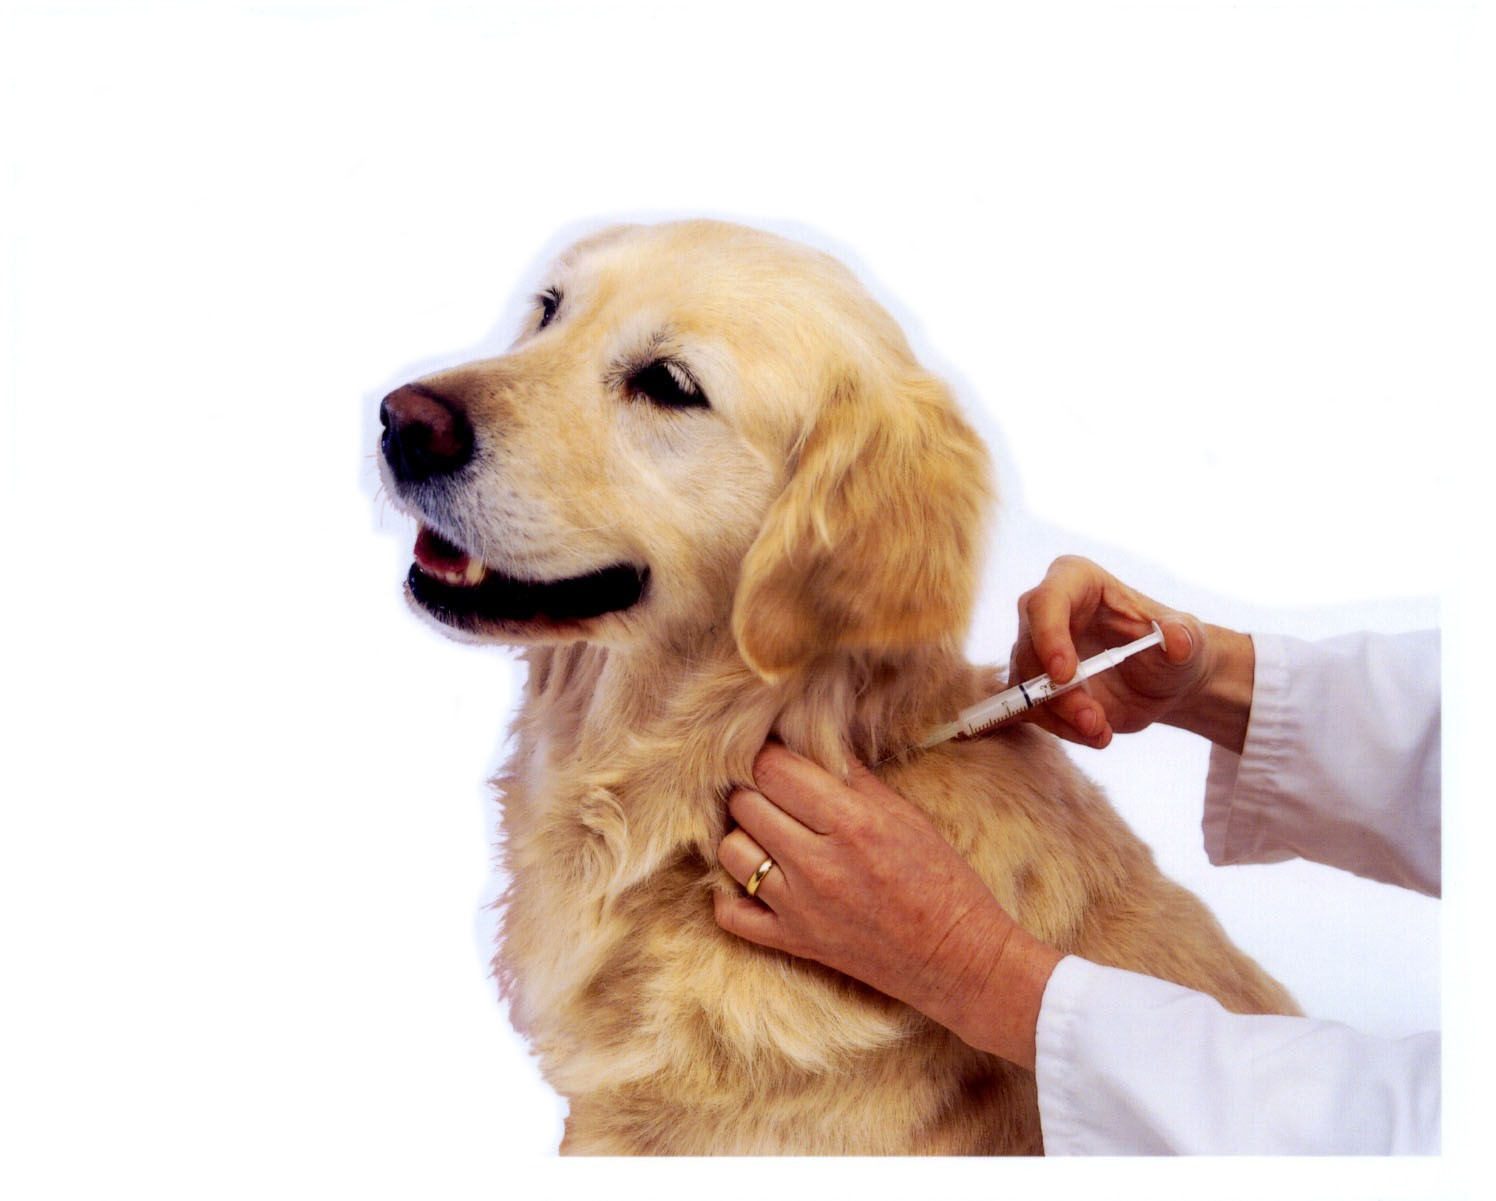 animal clinic nugegoda udahamulla dog vaccines understanding dog vaccines understanding the importance of vaccinations